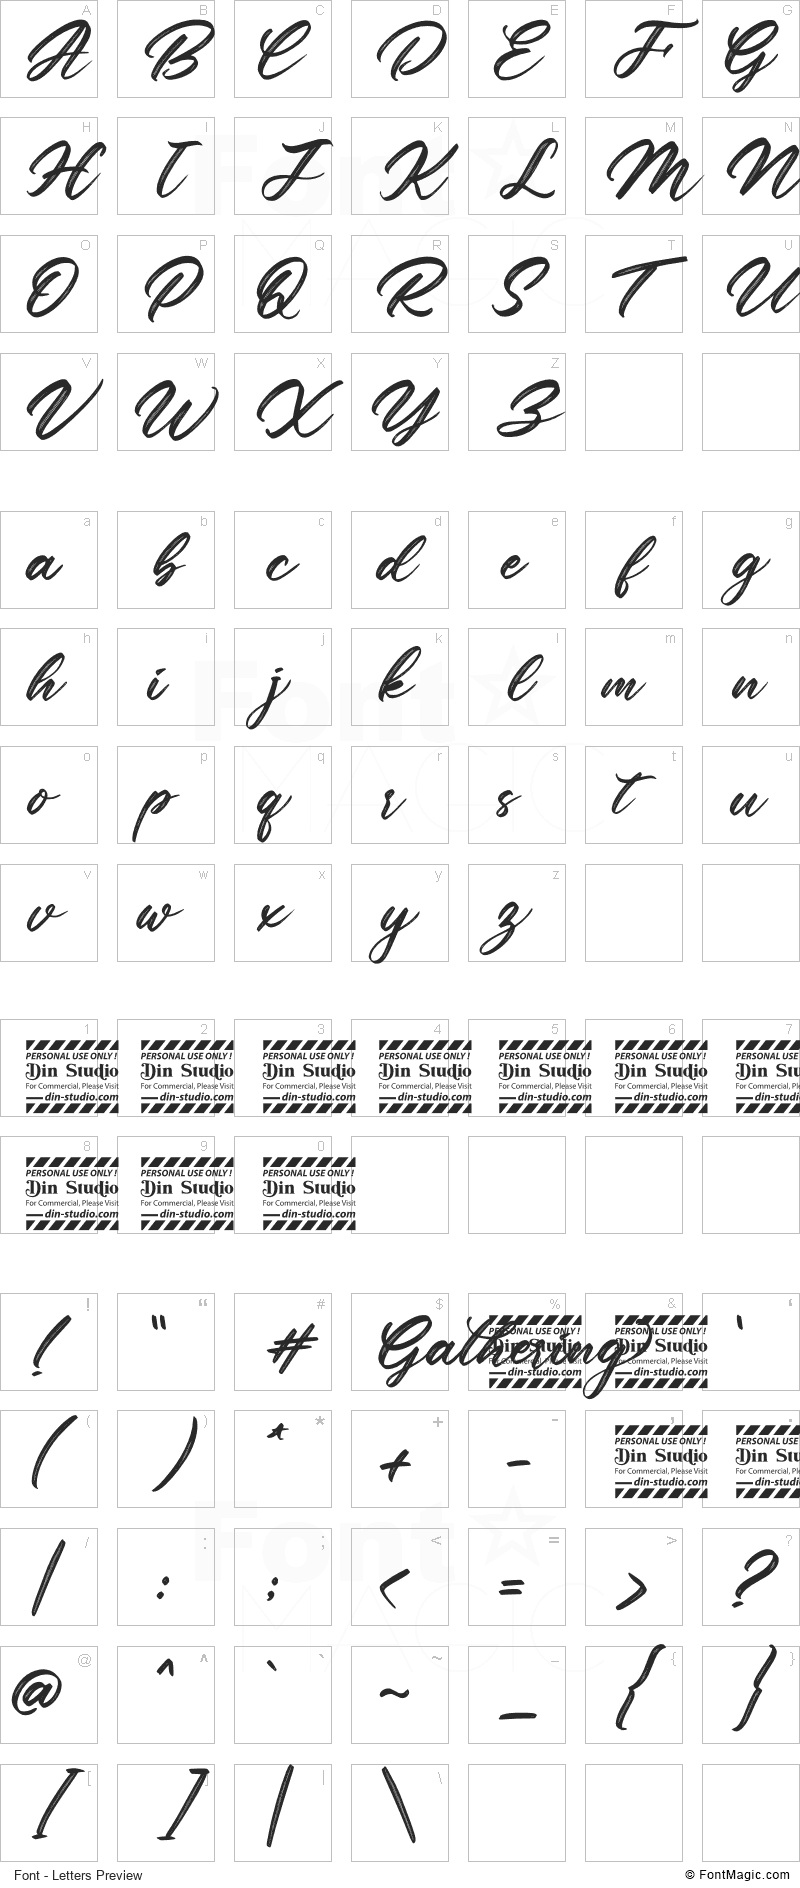 Gathering Font - All Latters Preview Chart